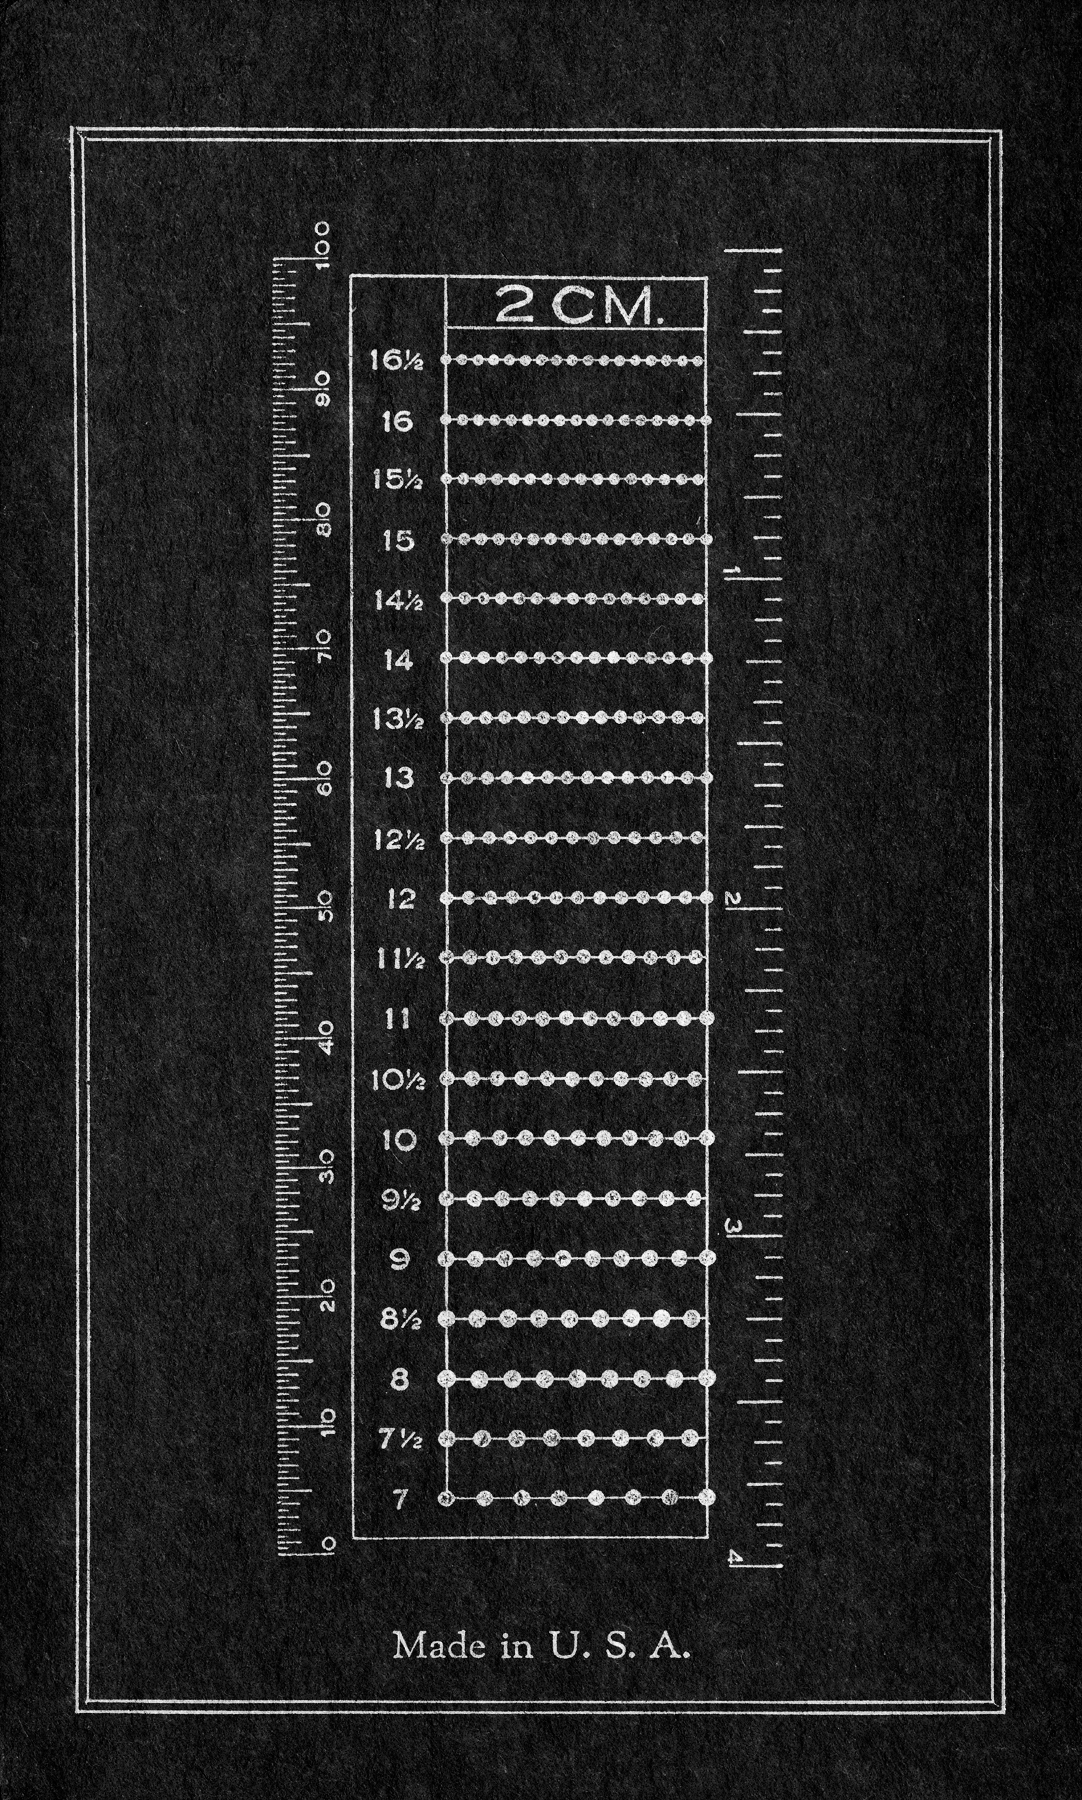 Vintage cardboard ruler - inverted black photo